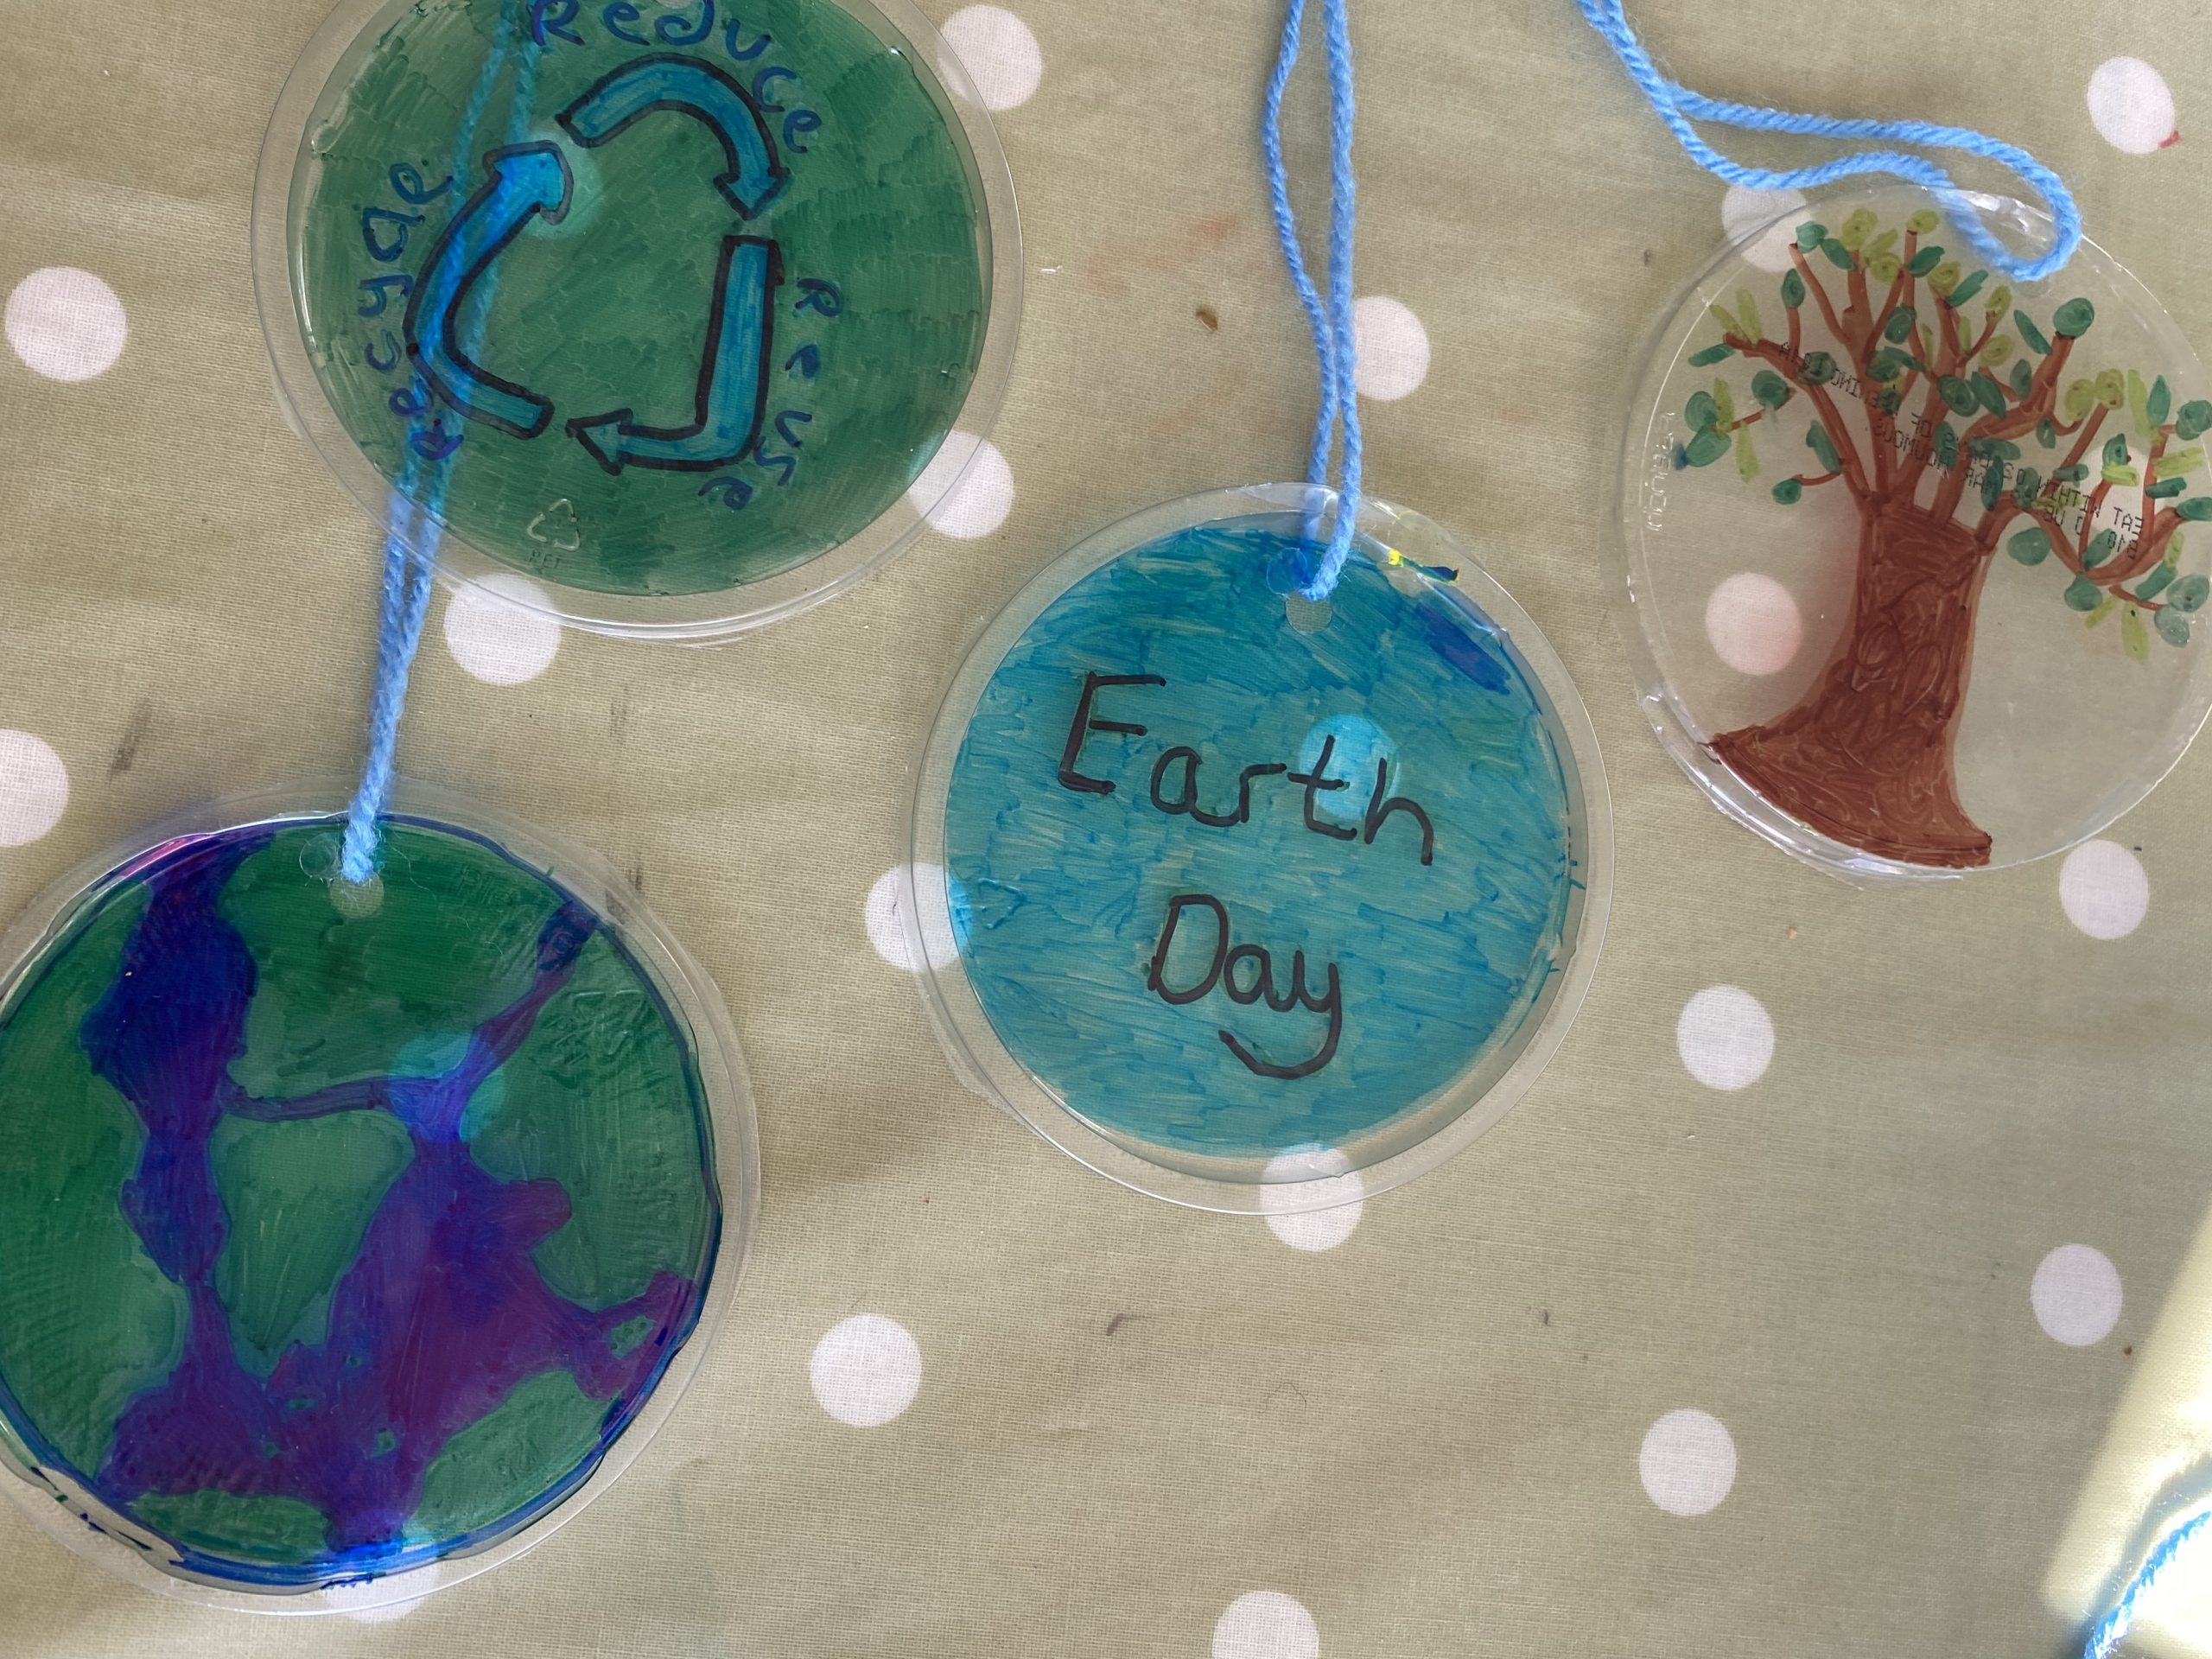 Earth day up cycled recycled decorations form plastics and sharpies